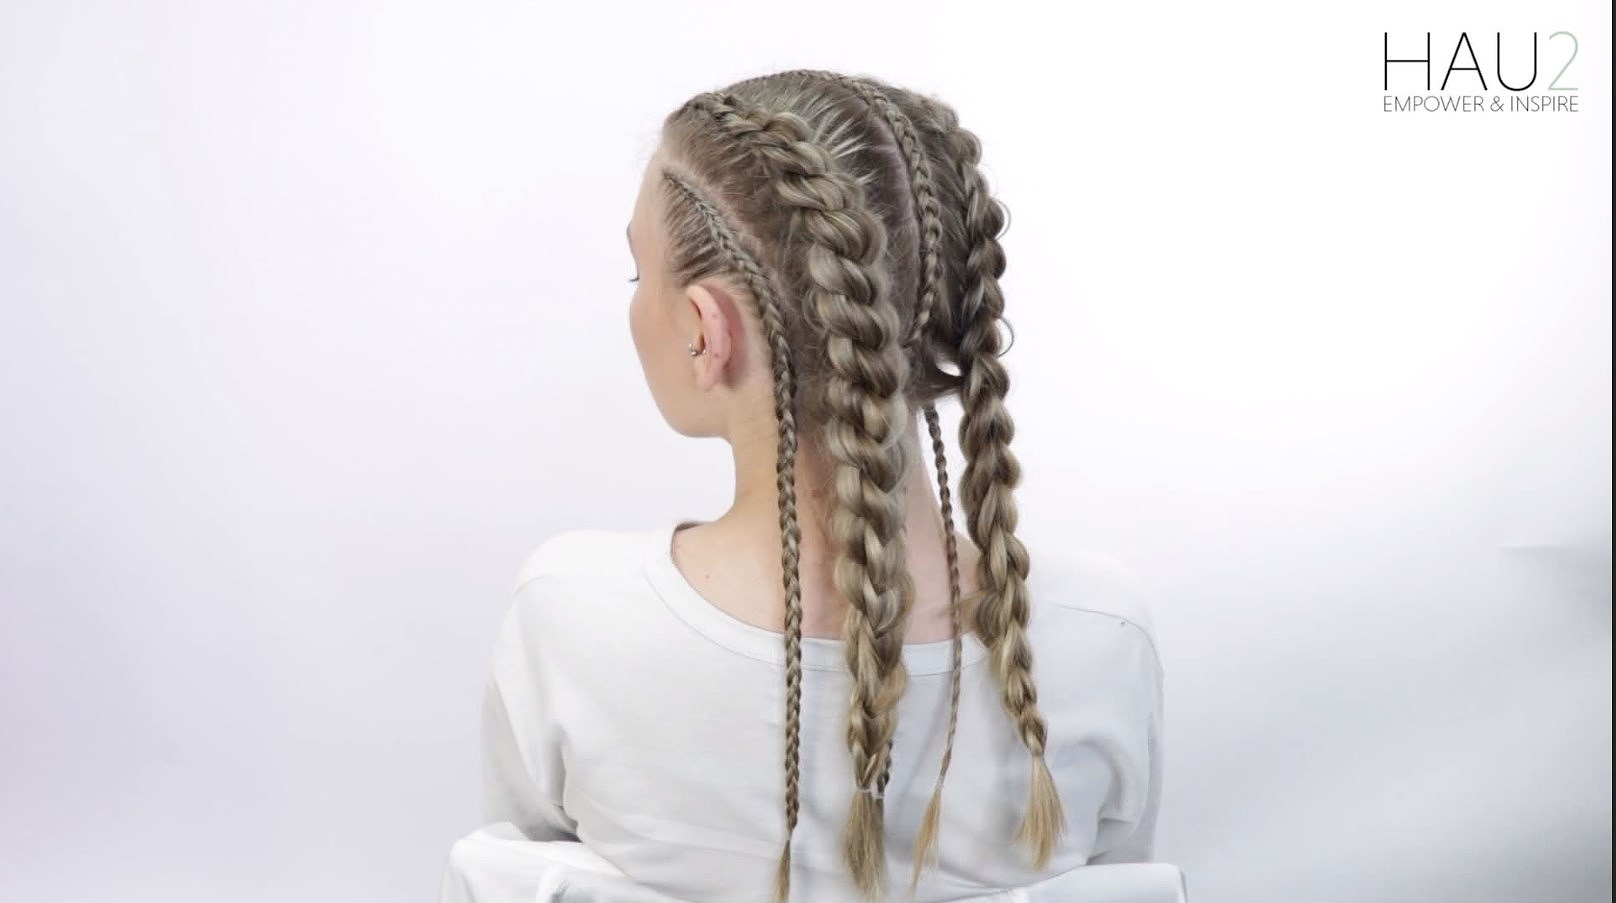 An Awesome Braided Festival Look